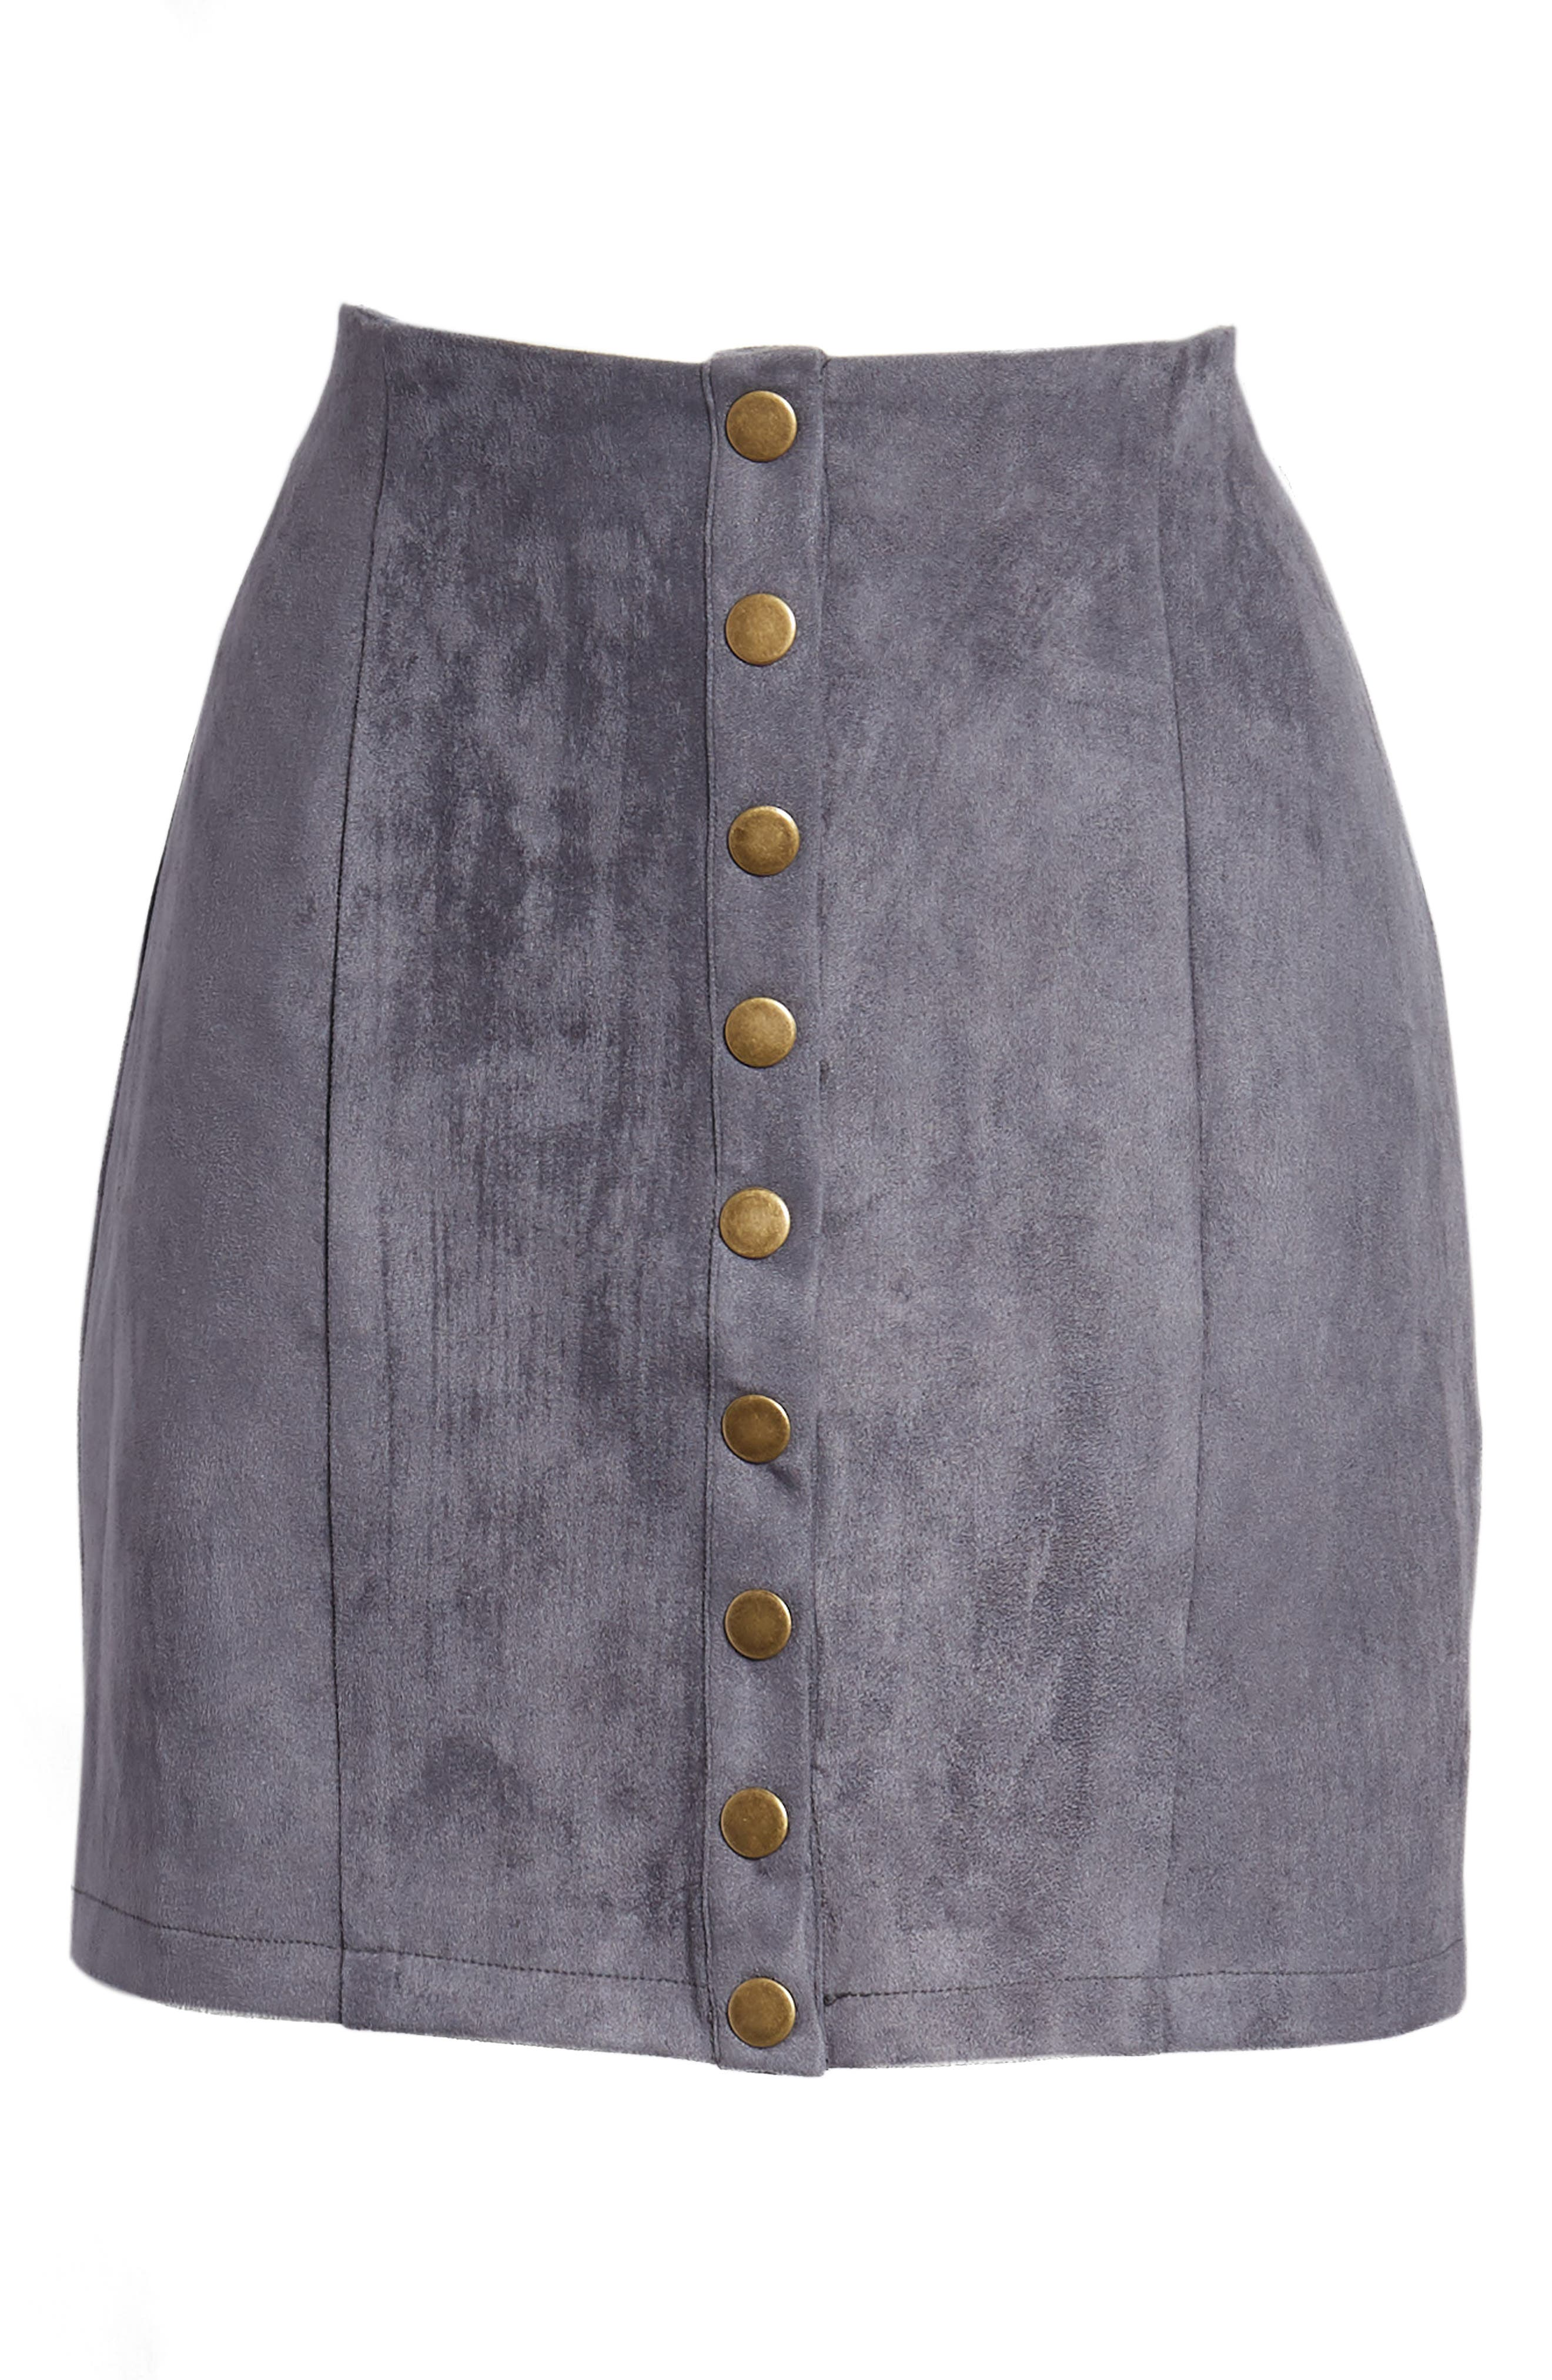 Bishop + Young Front Snap Faux Suede Miniskirt,                             Alternate thumbnail 6, color,                             453